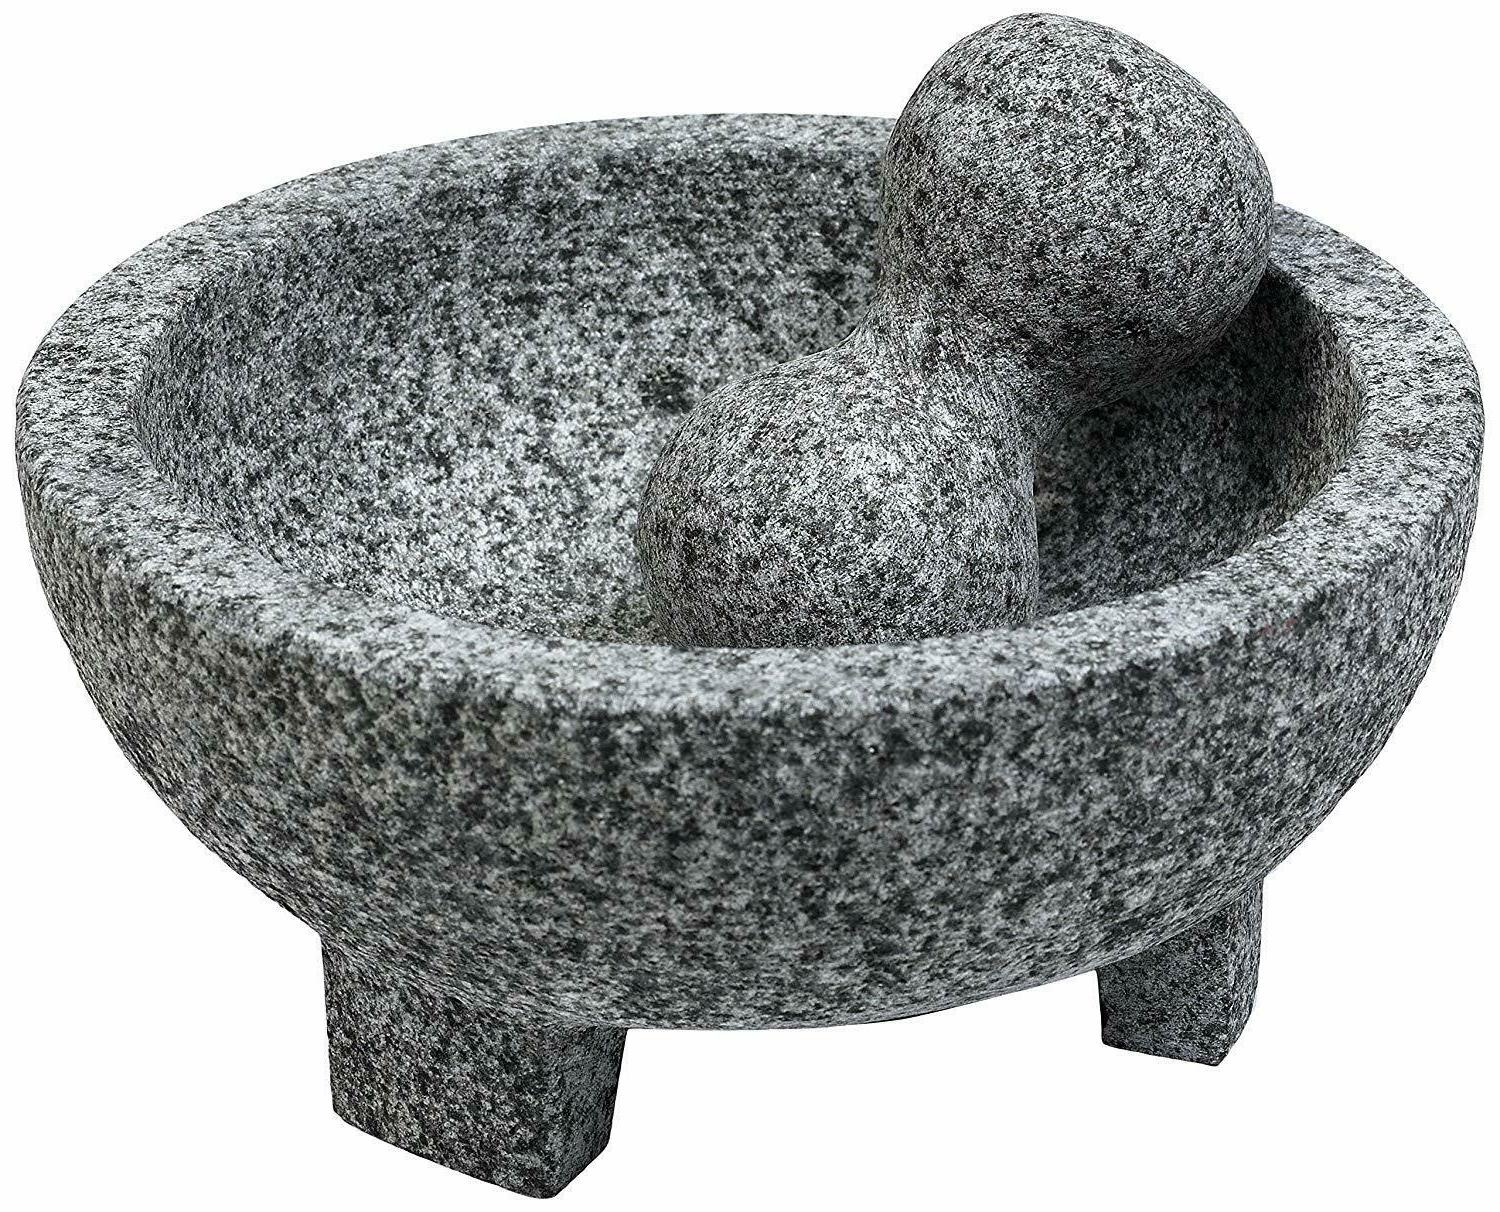 Mortar Pestles Granite Molcajete Spice Grinder 6 in. Gray Be